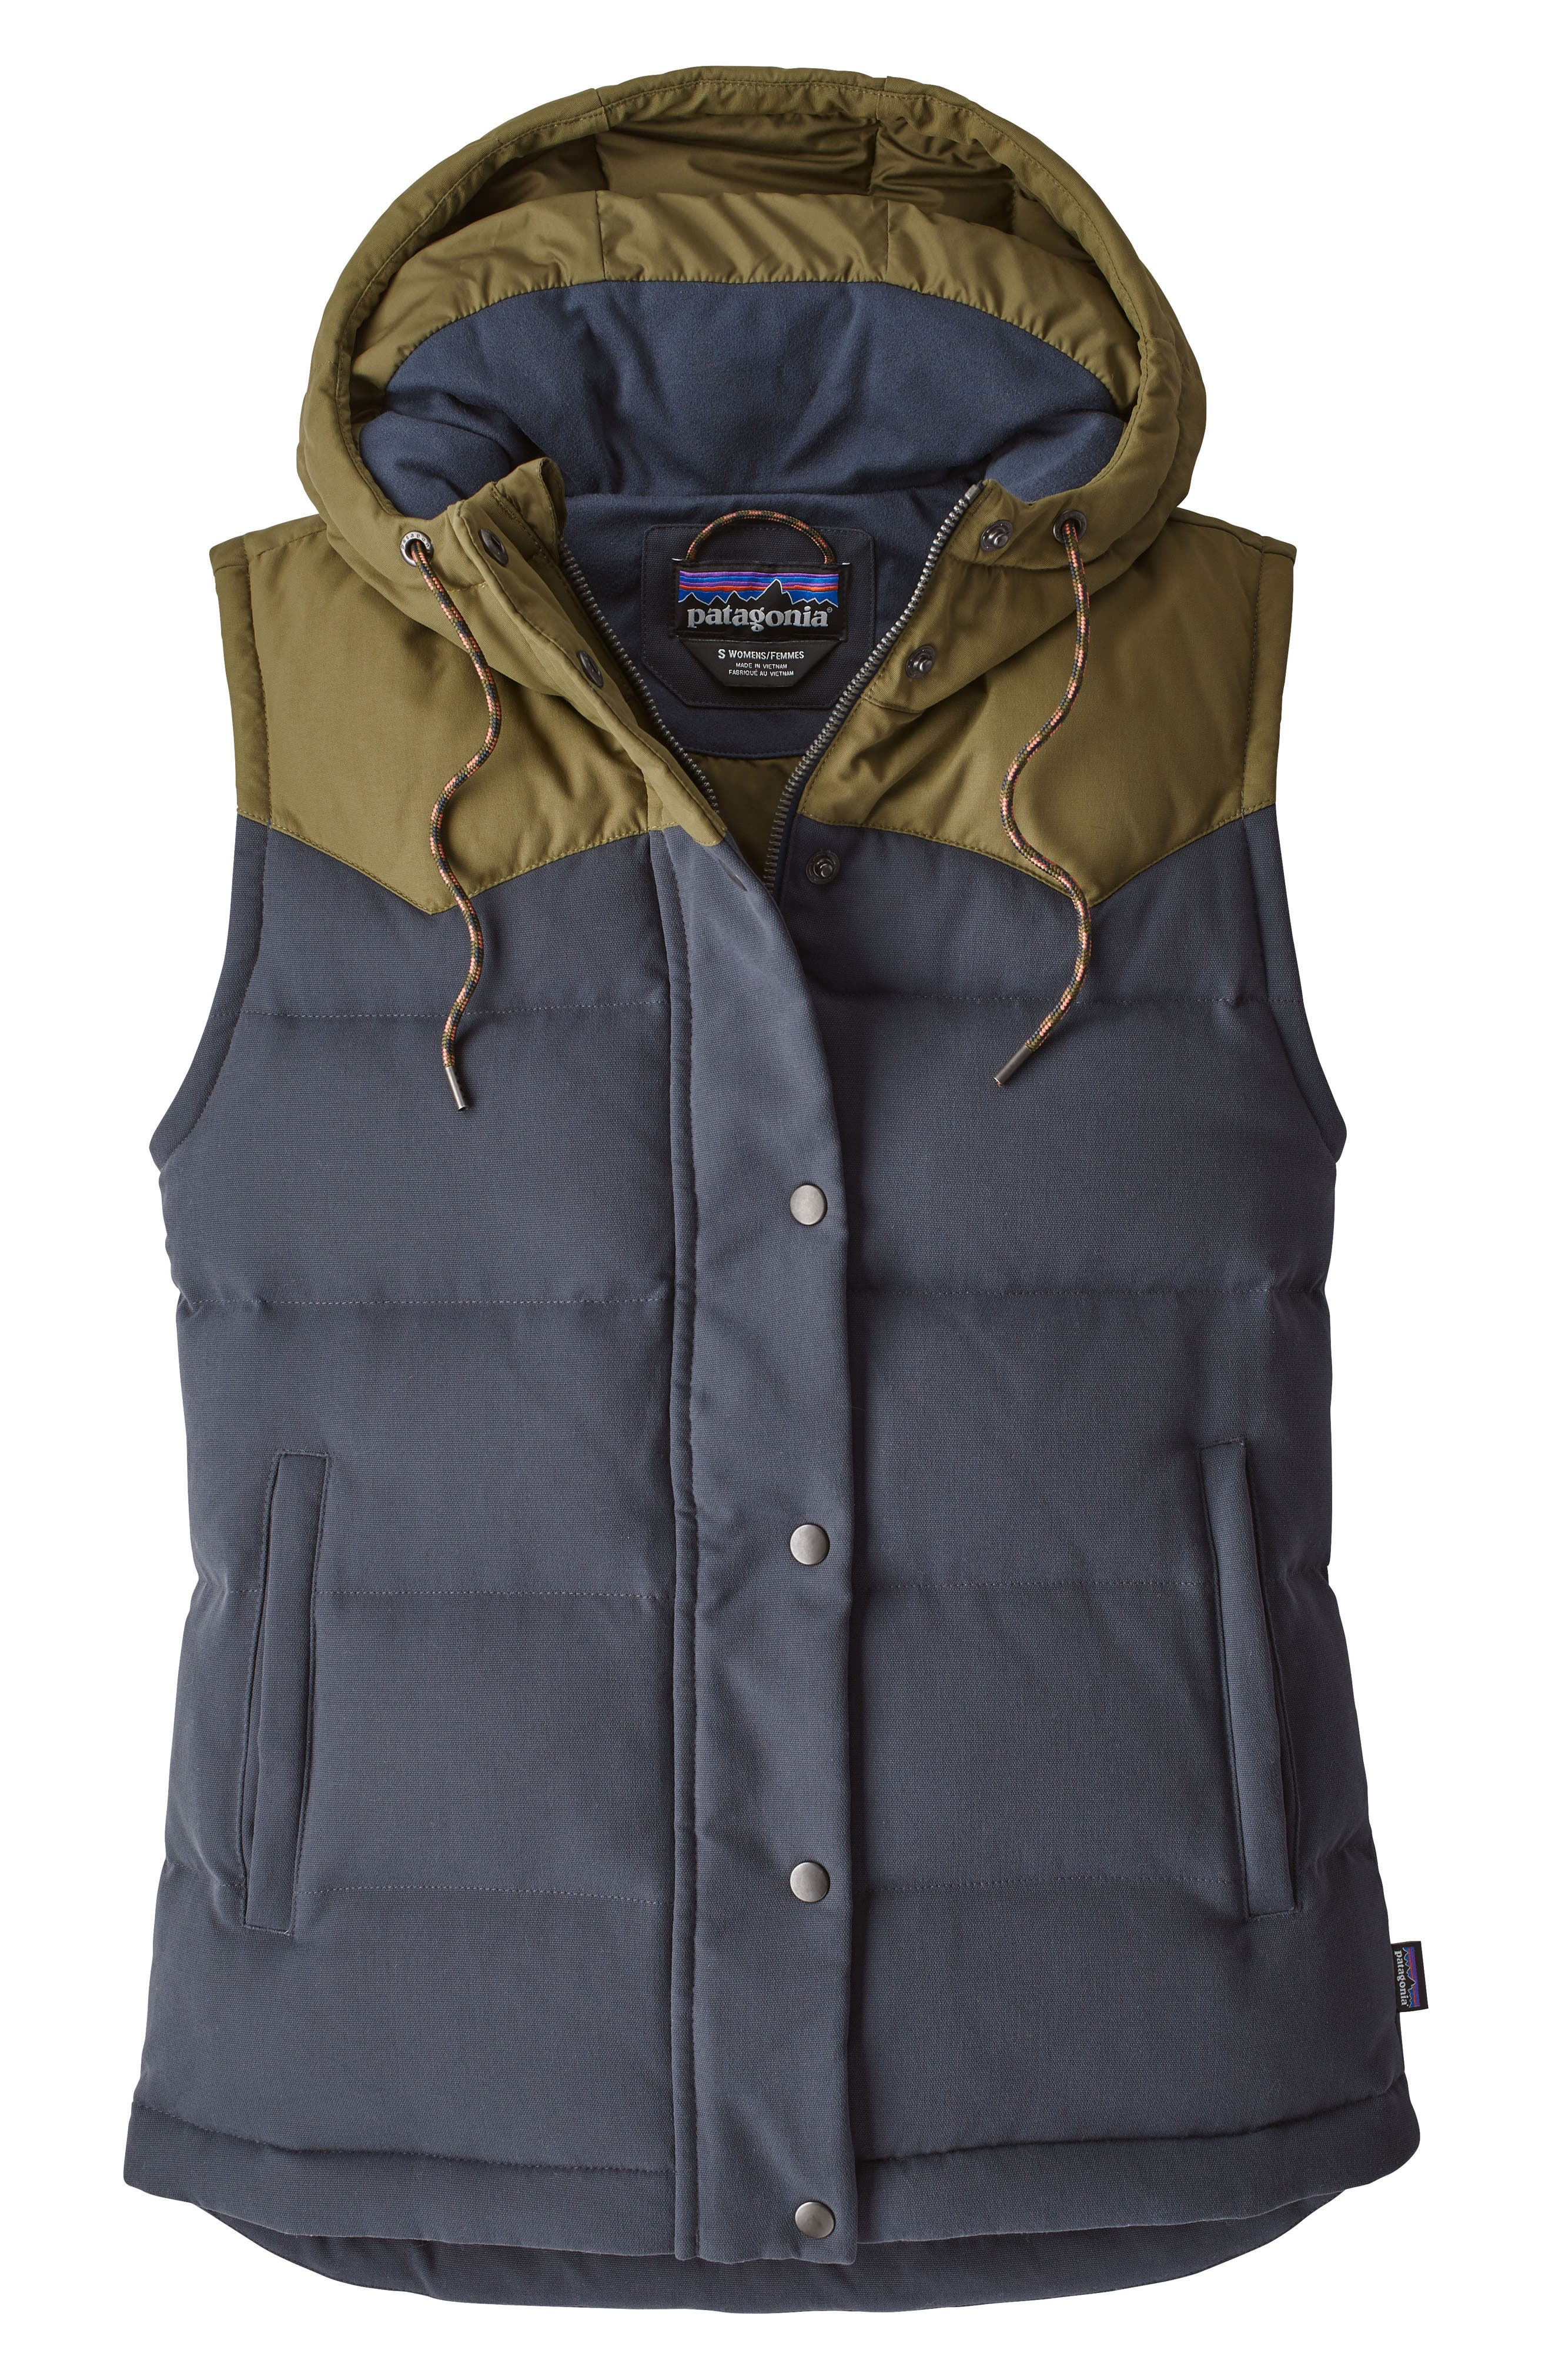 PATAGONIA 'Bivy' Water Repellent 600 Fill Power Down Vest, Main, color, SMOLDER BLUE W/ FATIGUE GREEN